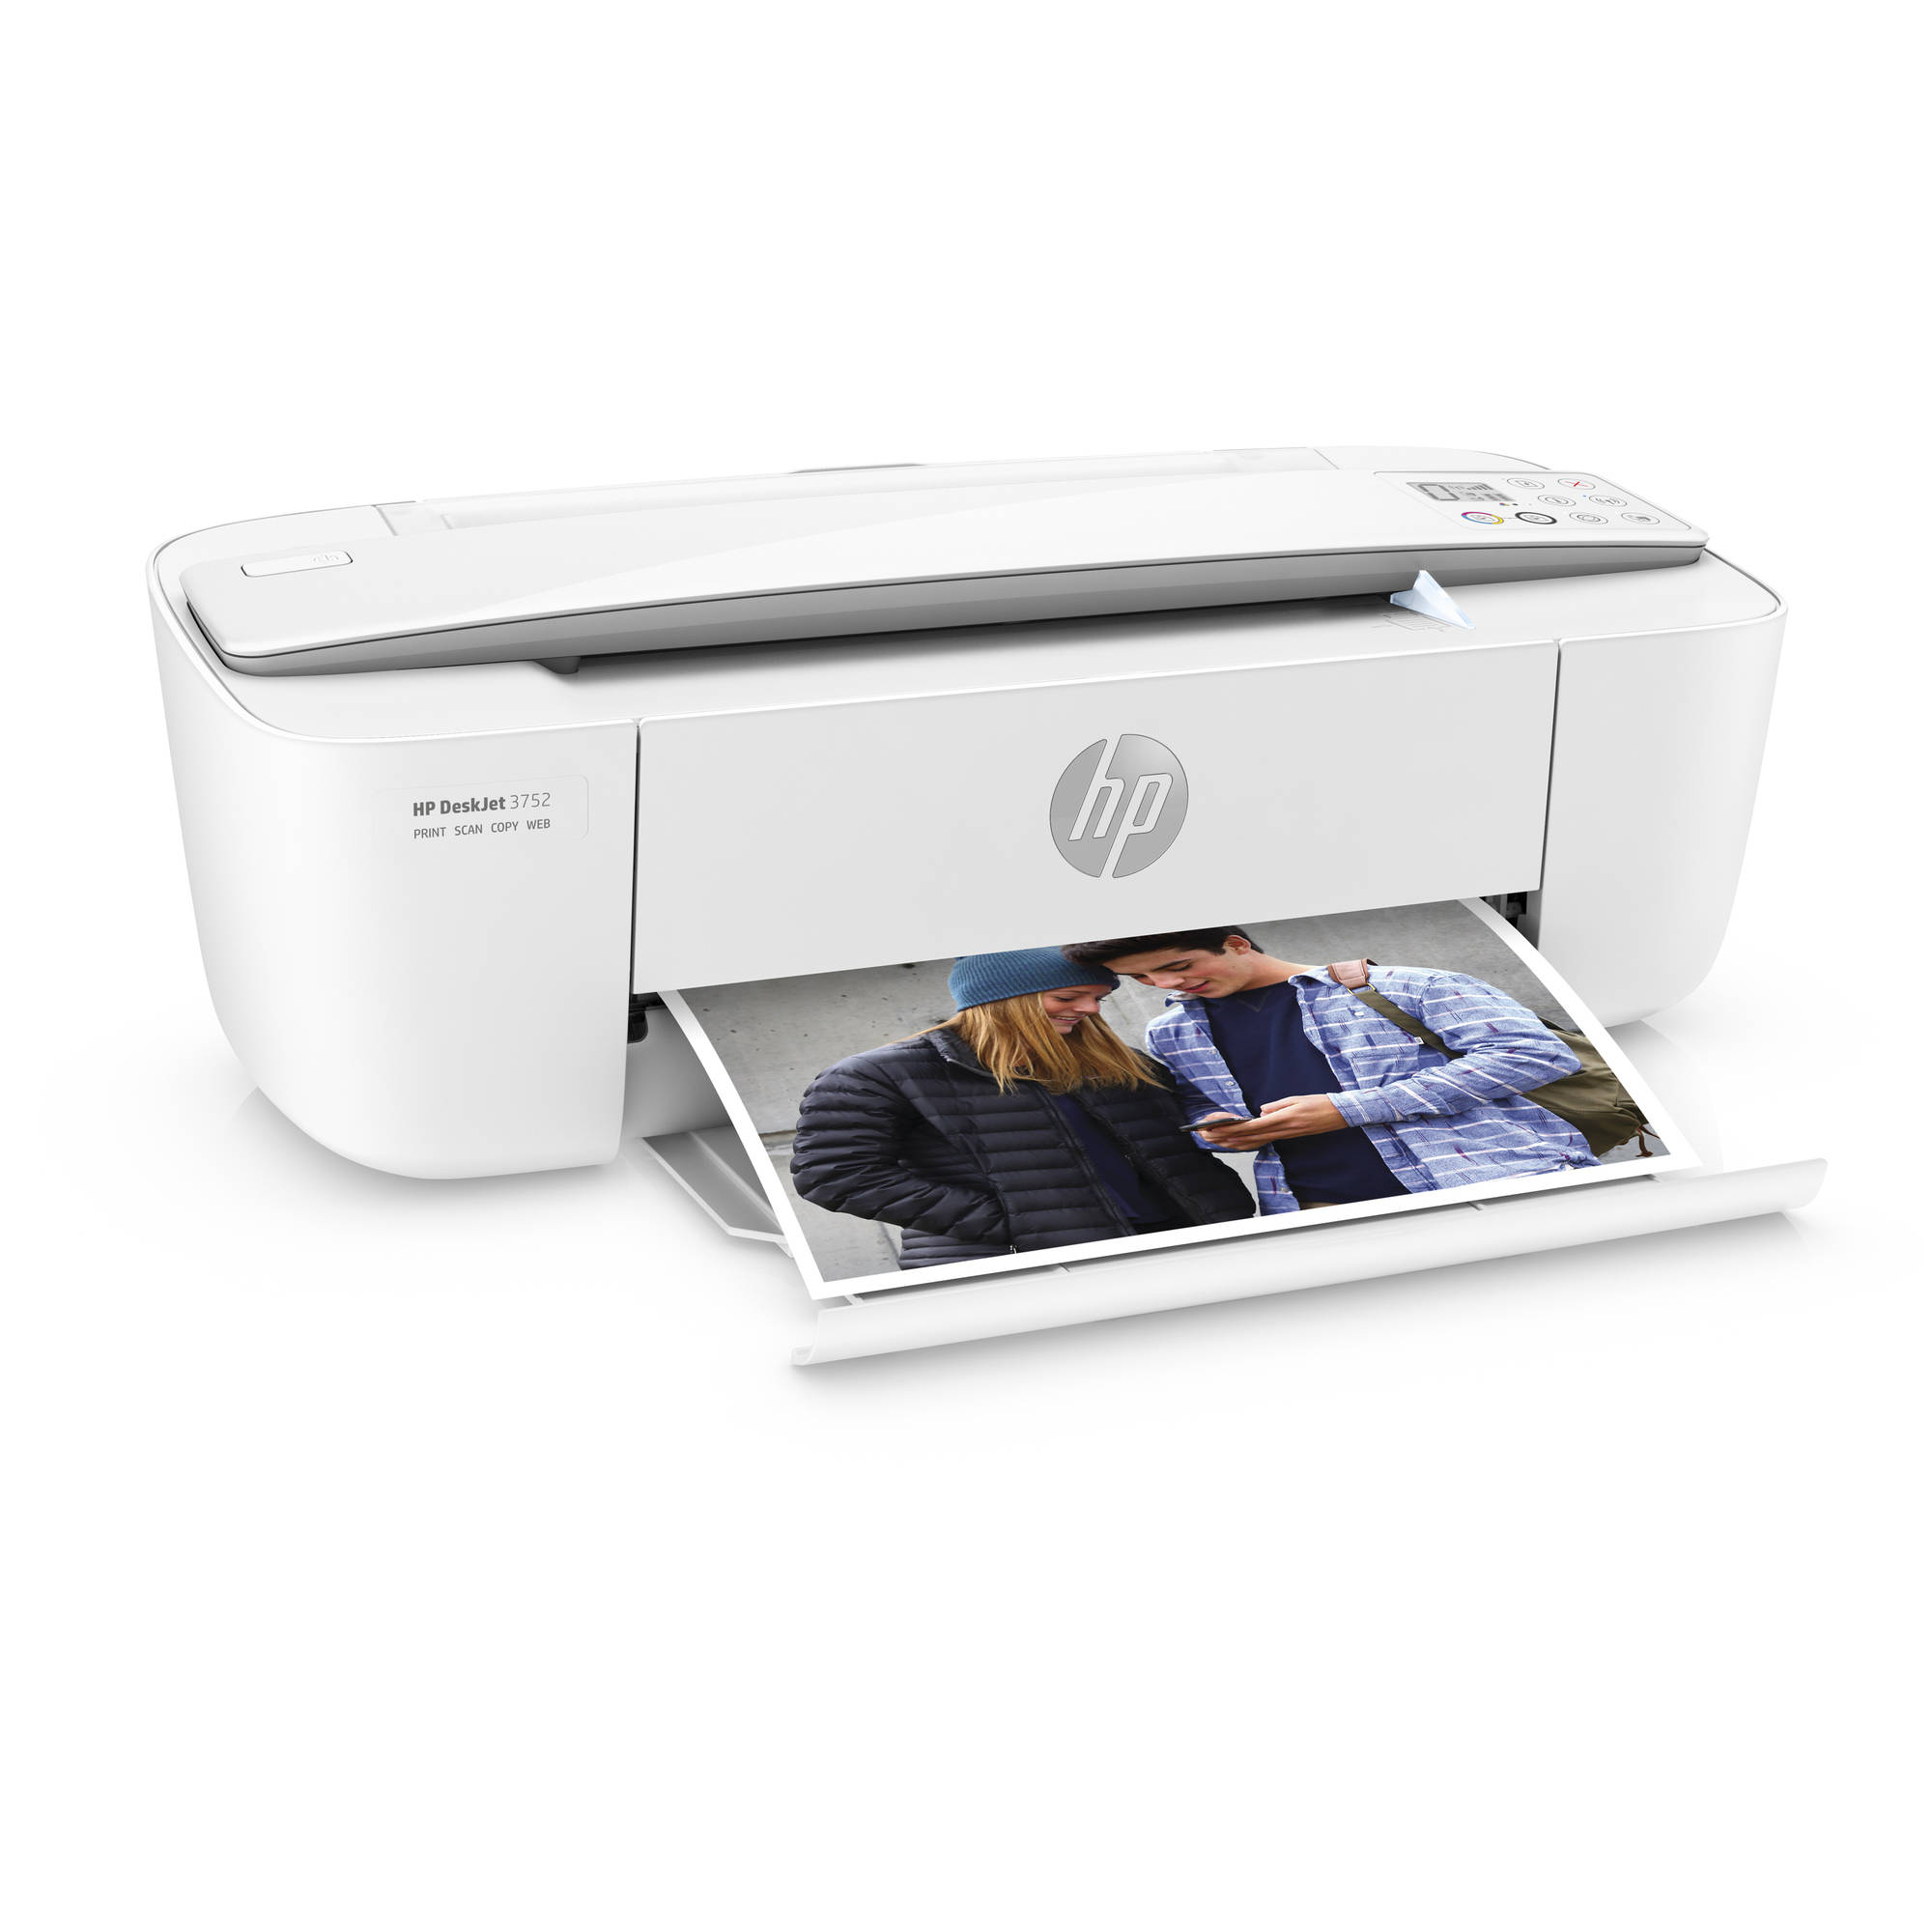 Hp Deskjet 3752 Wireless All In One Compact Printer T8w51a Ink Advantage 3775